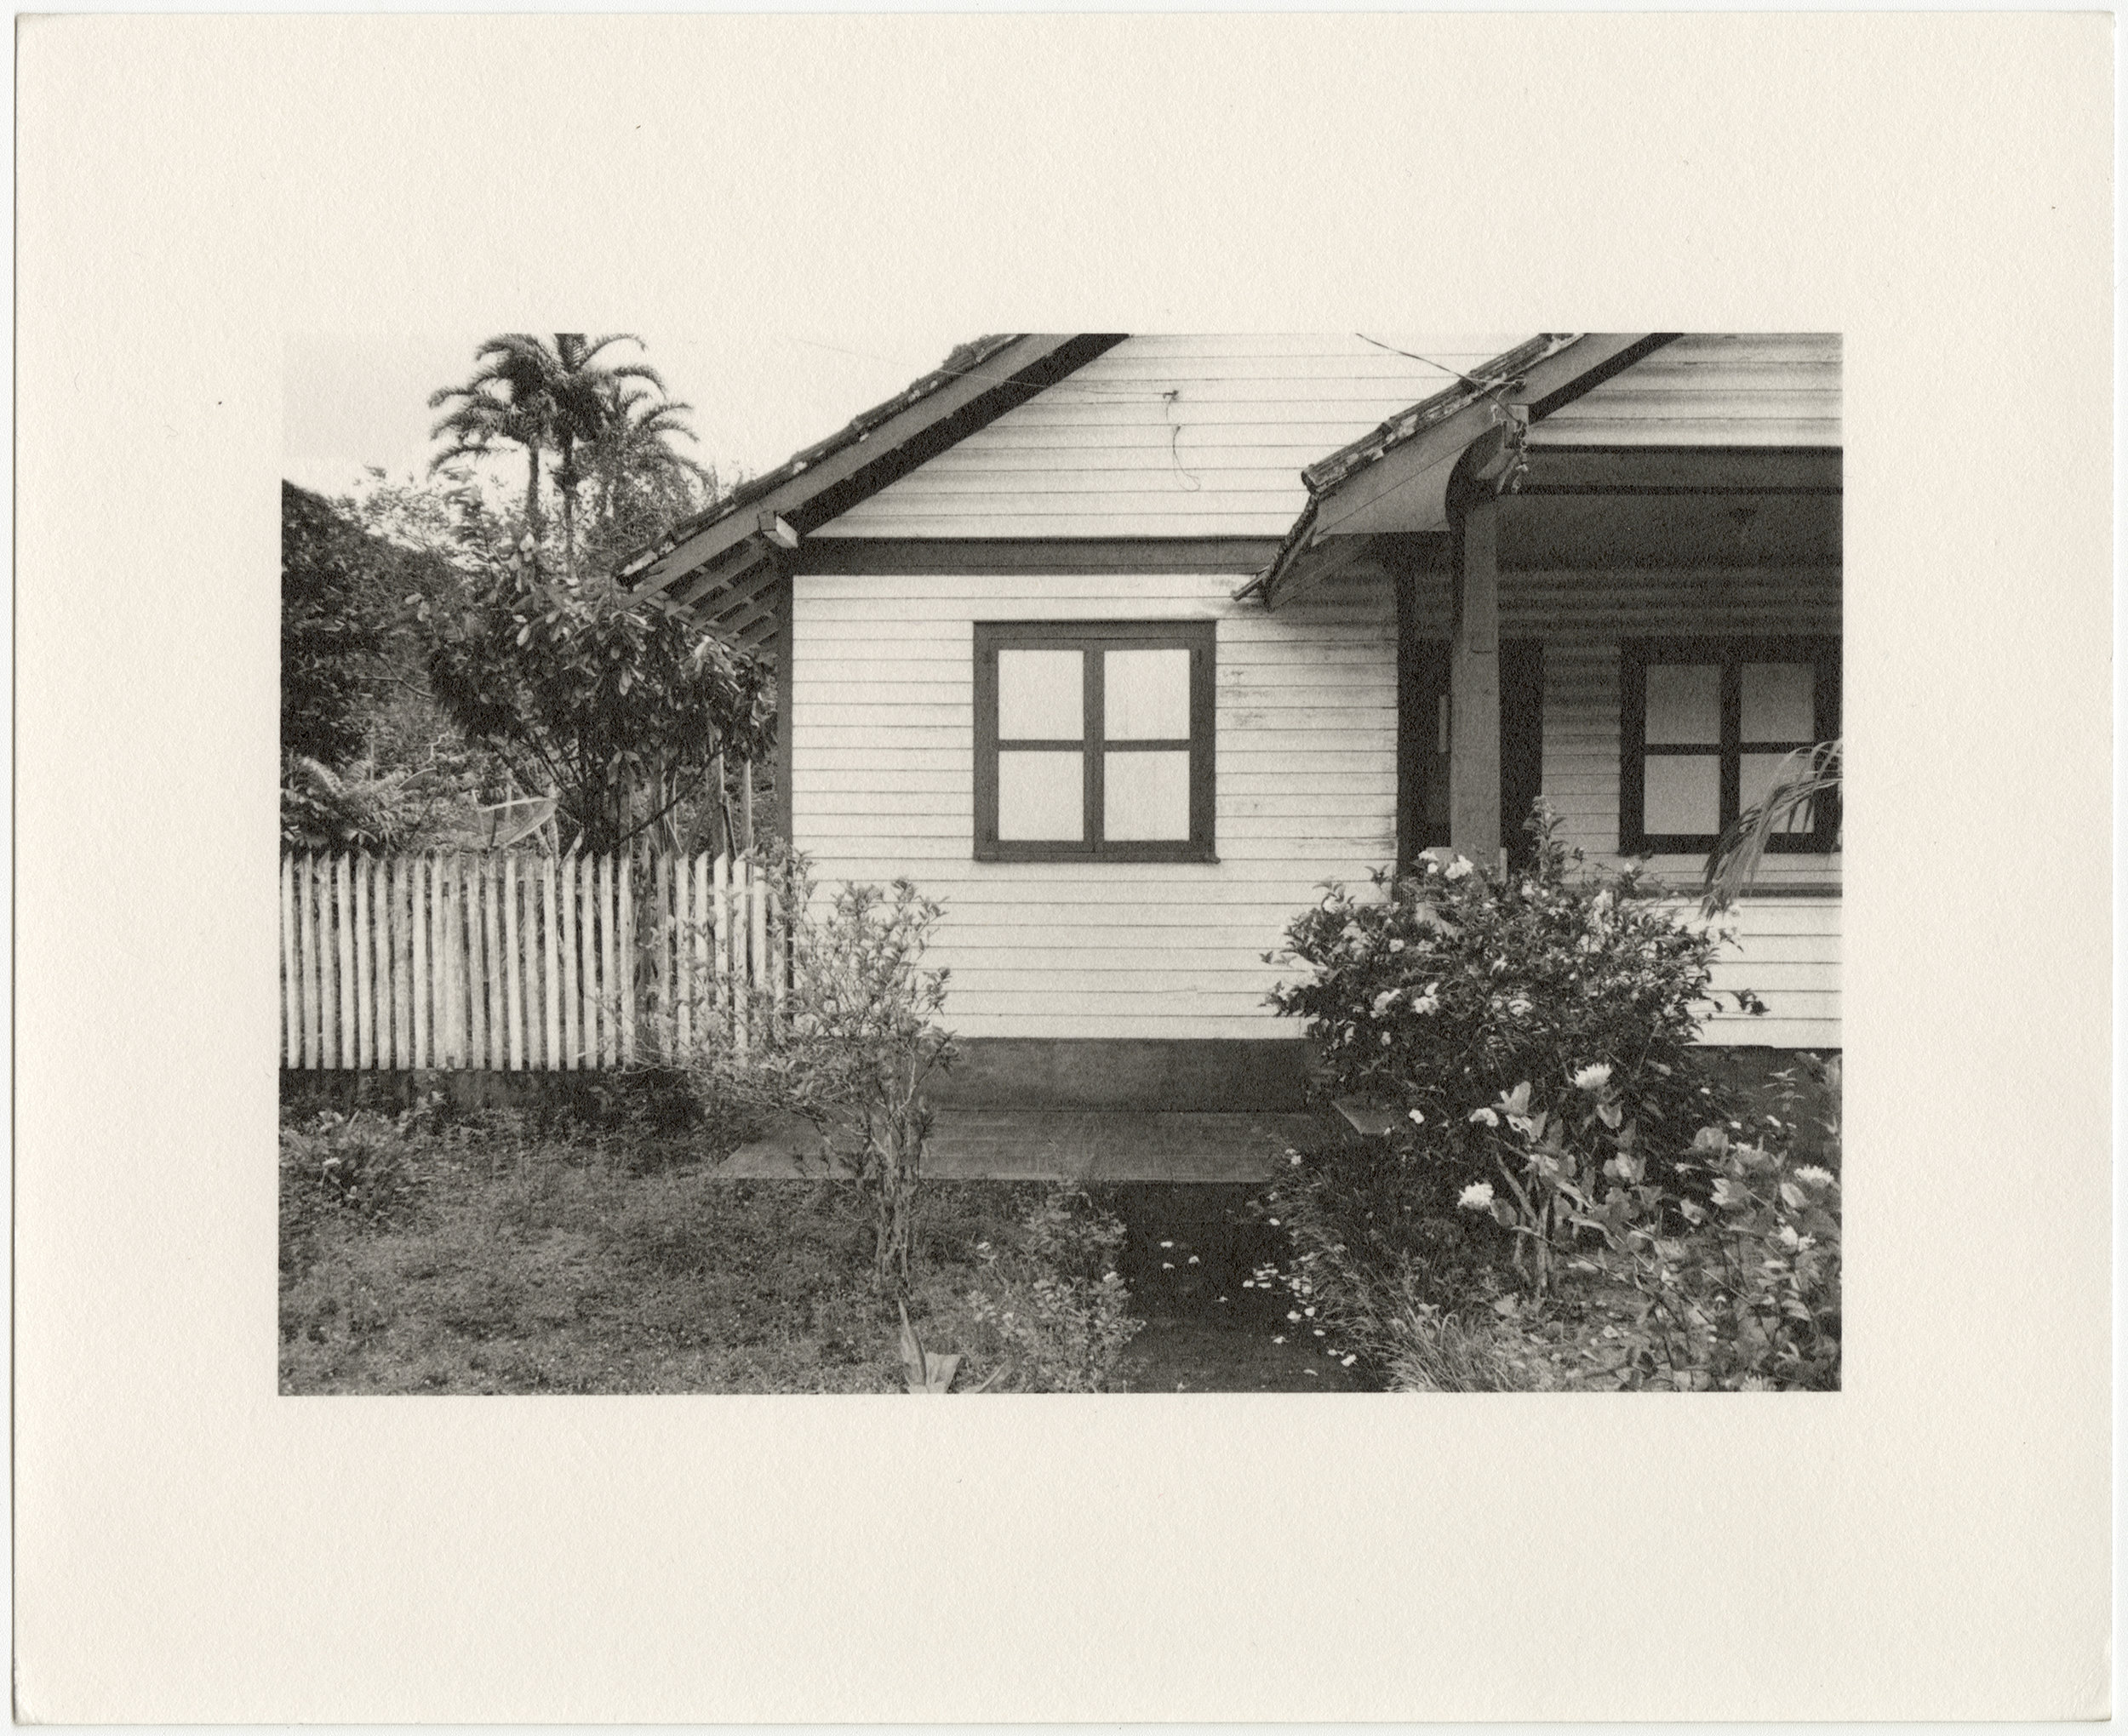 "Belterra employee house with window and white picket fence, built in 1934 by the Companhia Ford Industrial Do Brasil Ford Motor Company. 2014 Belterra, Pará, Brazil. Gelatin silver fiber print, 8"" x 10"", 2014/2018"